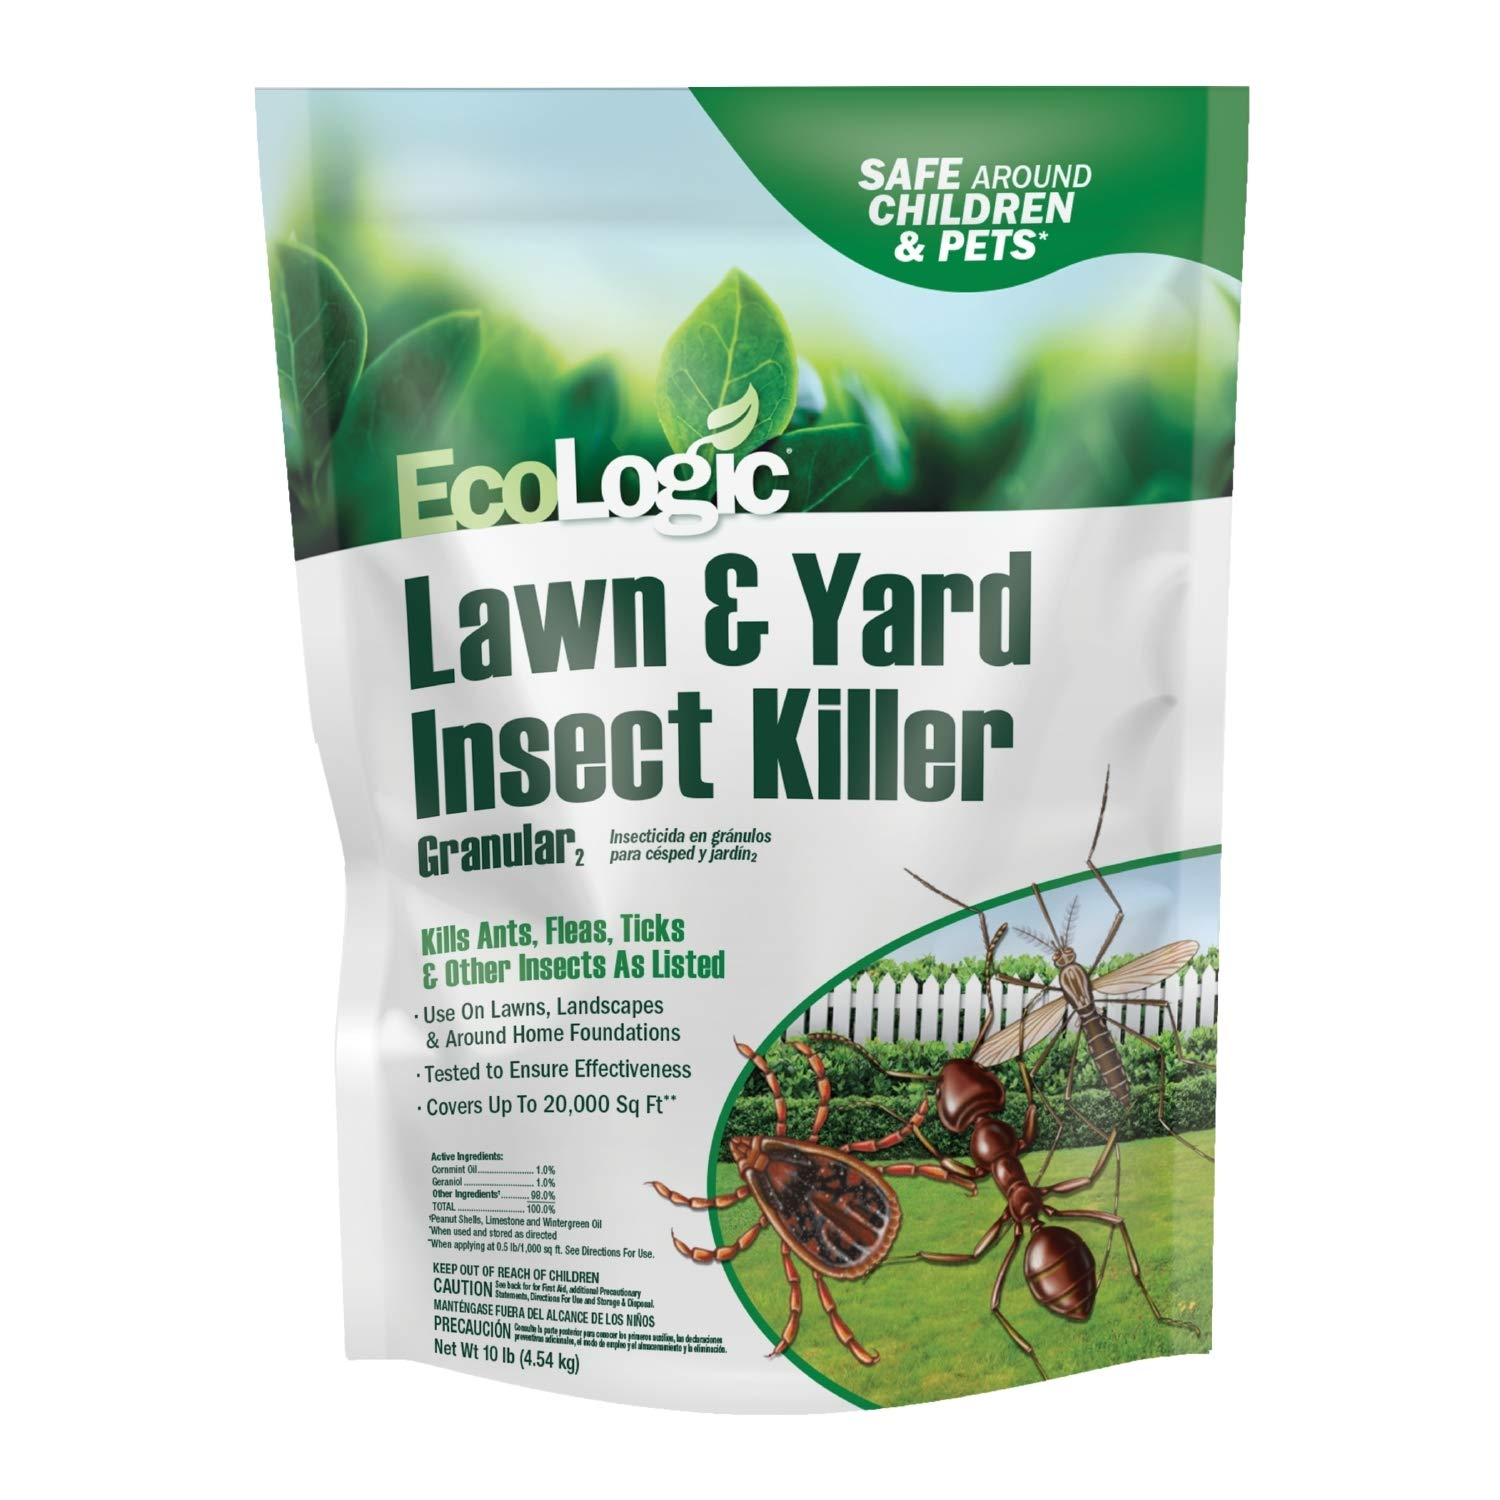 Ecologic HG-75005 Lawn Insect Killer by Eco-Logic